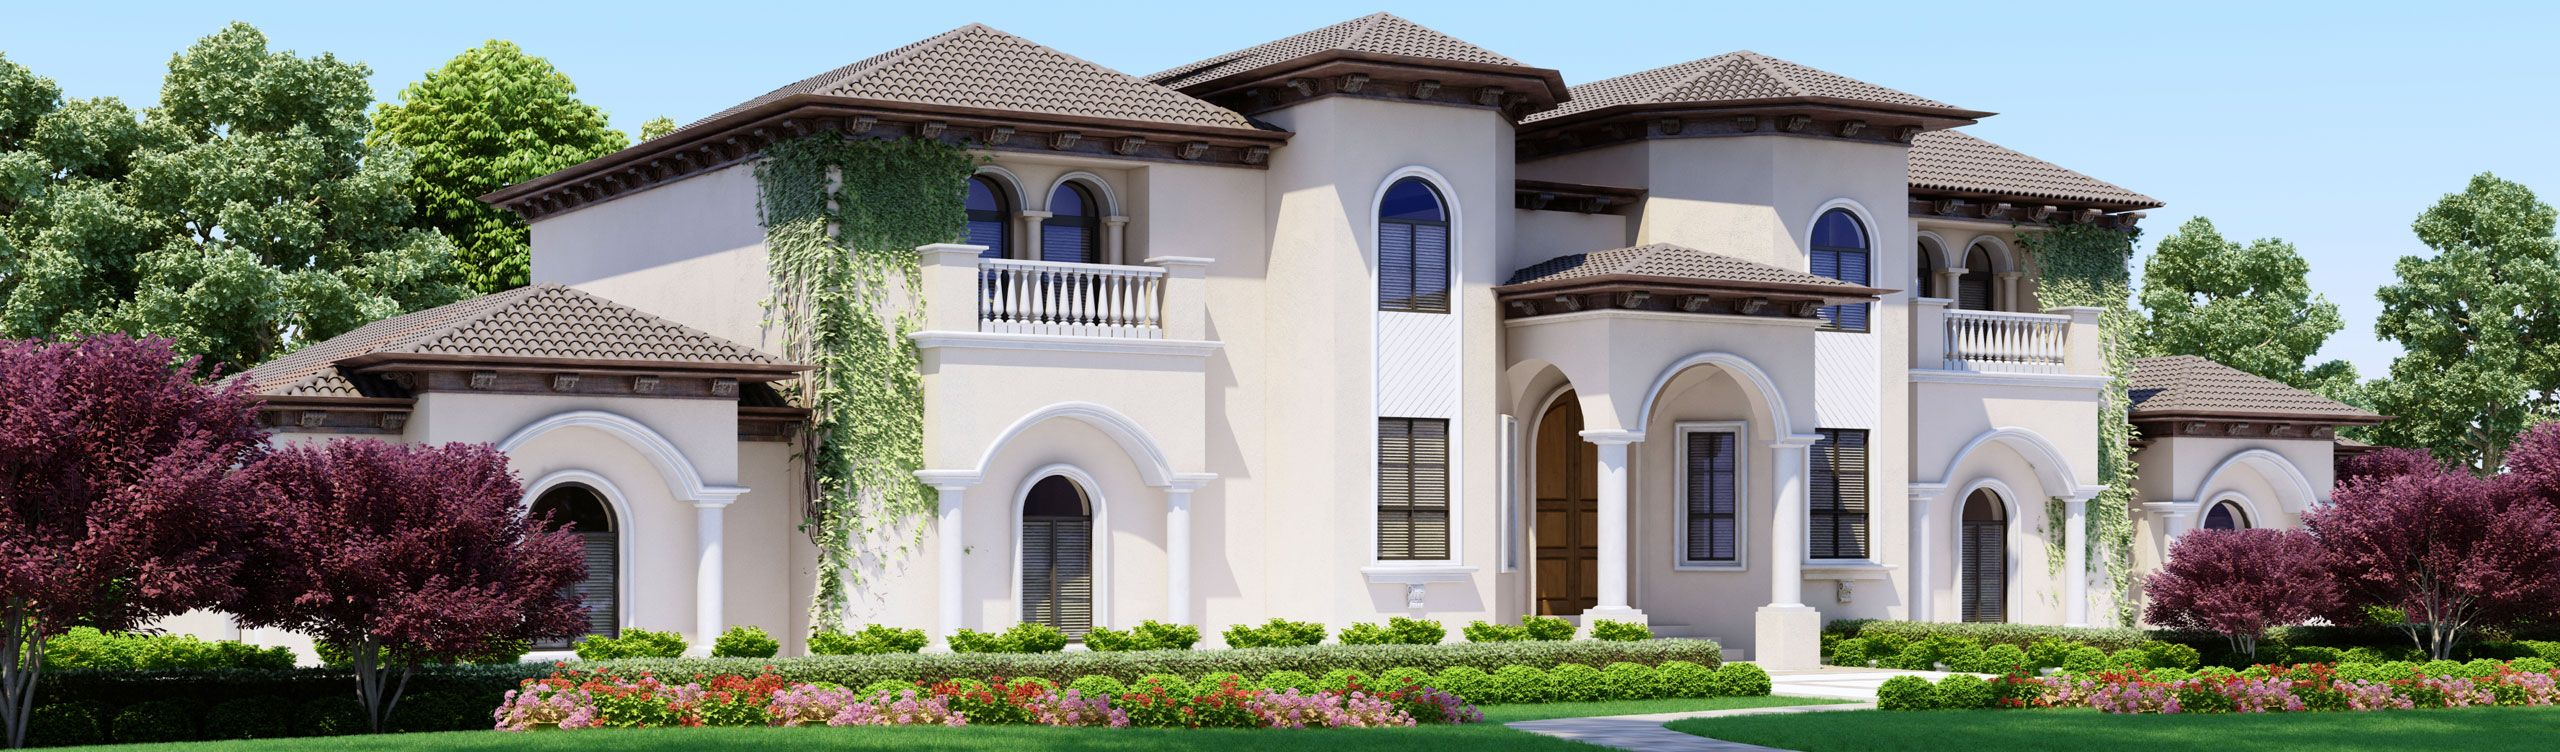 3d rendering services HD